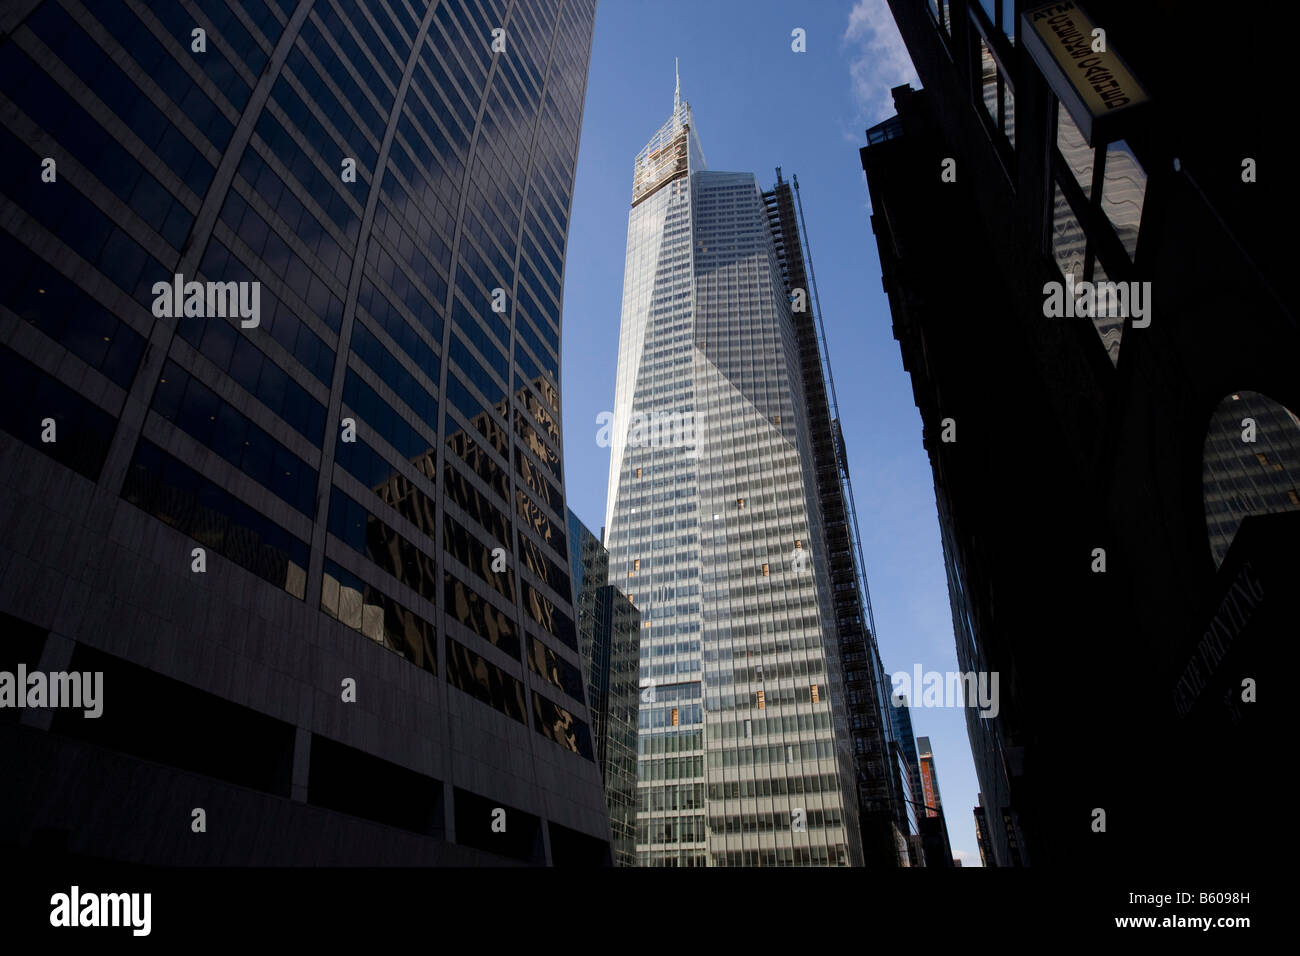 View of new Bank of America Tower under construction at One Bryant Park on Sixth Avenue between 42nd and 43rd Street - Stock Image